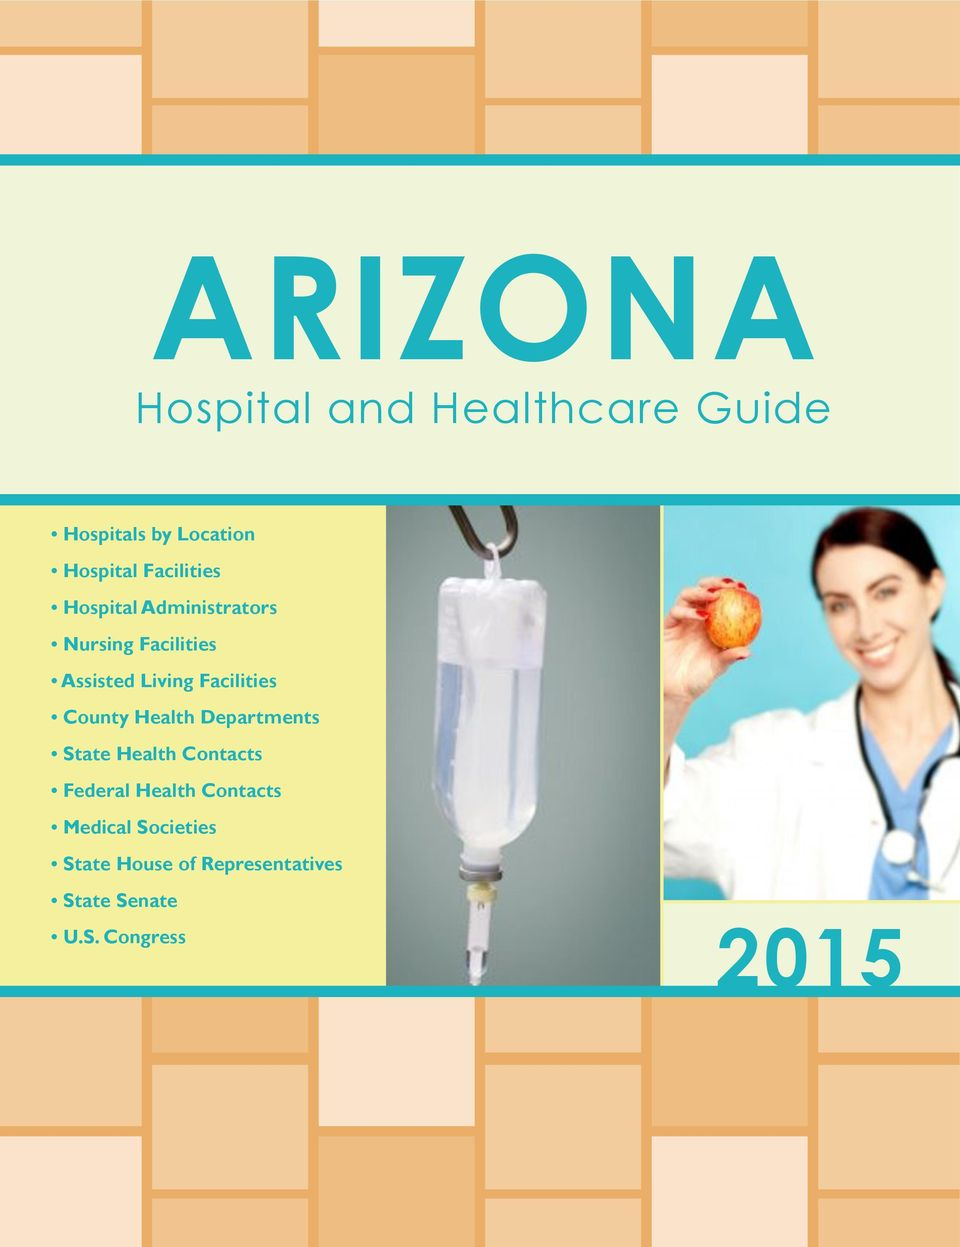 ARIZONA Hospital and Healthcare Guide - PDF